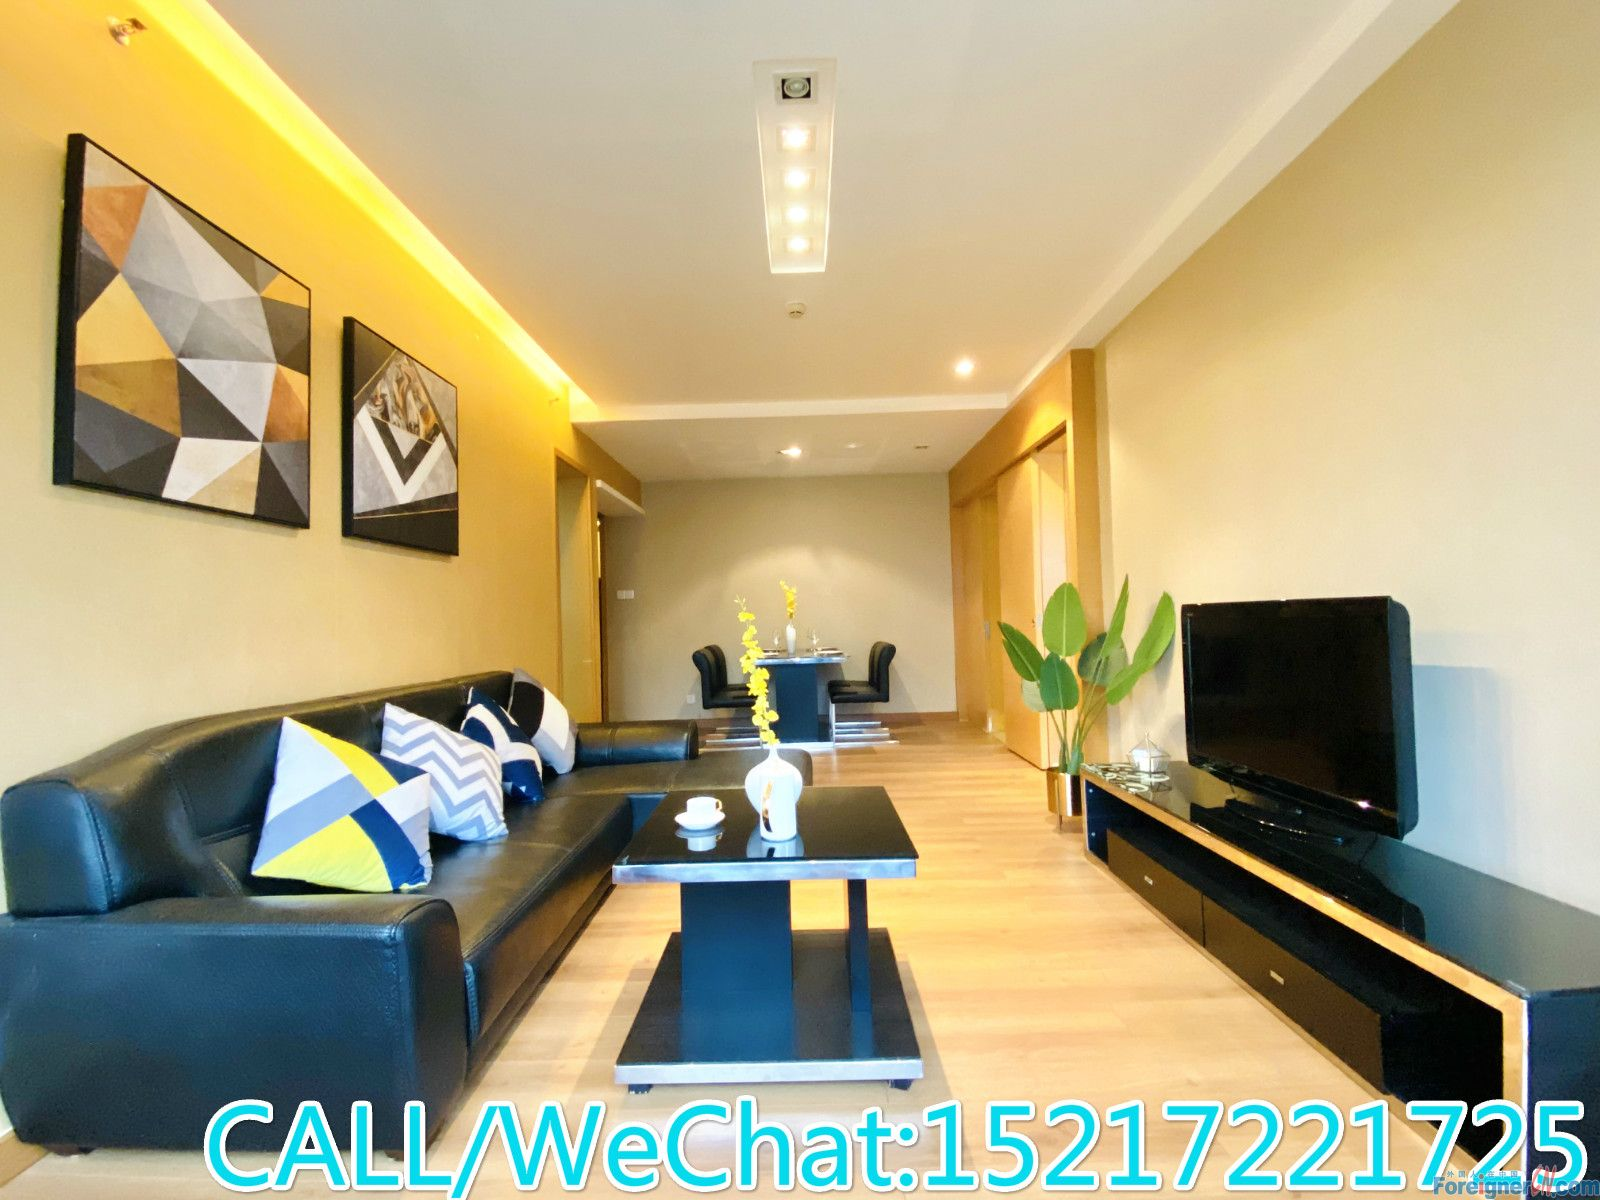 Starry Winking-nice 1br,fully furnished,clean and cozy,gym is free for tenants,CBD AREA.